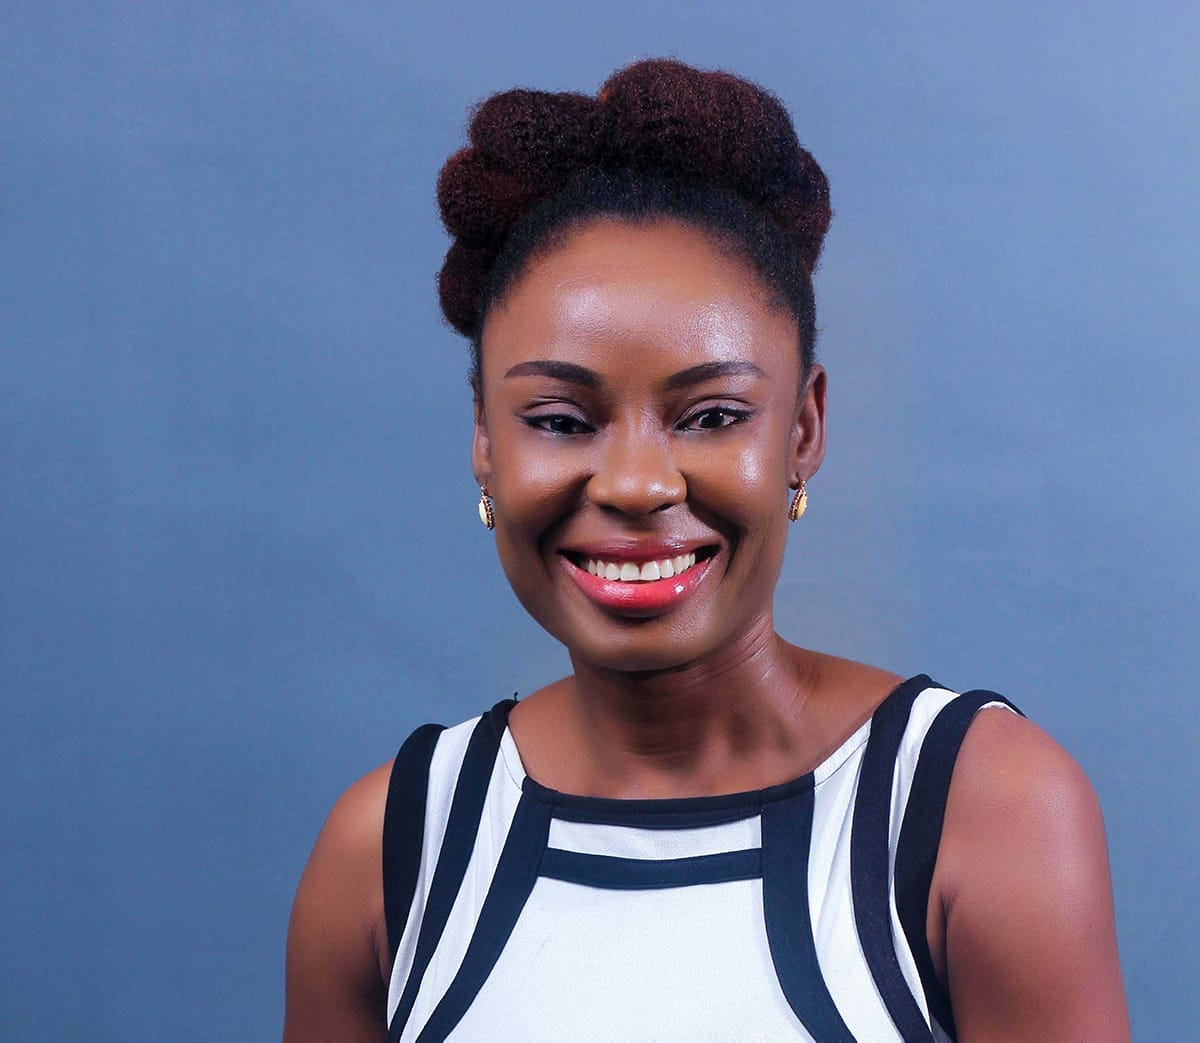 VeggieVictory: Vevolution fuels second investment round for Nigeria's first plant-based company